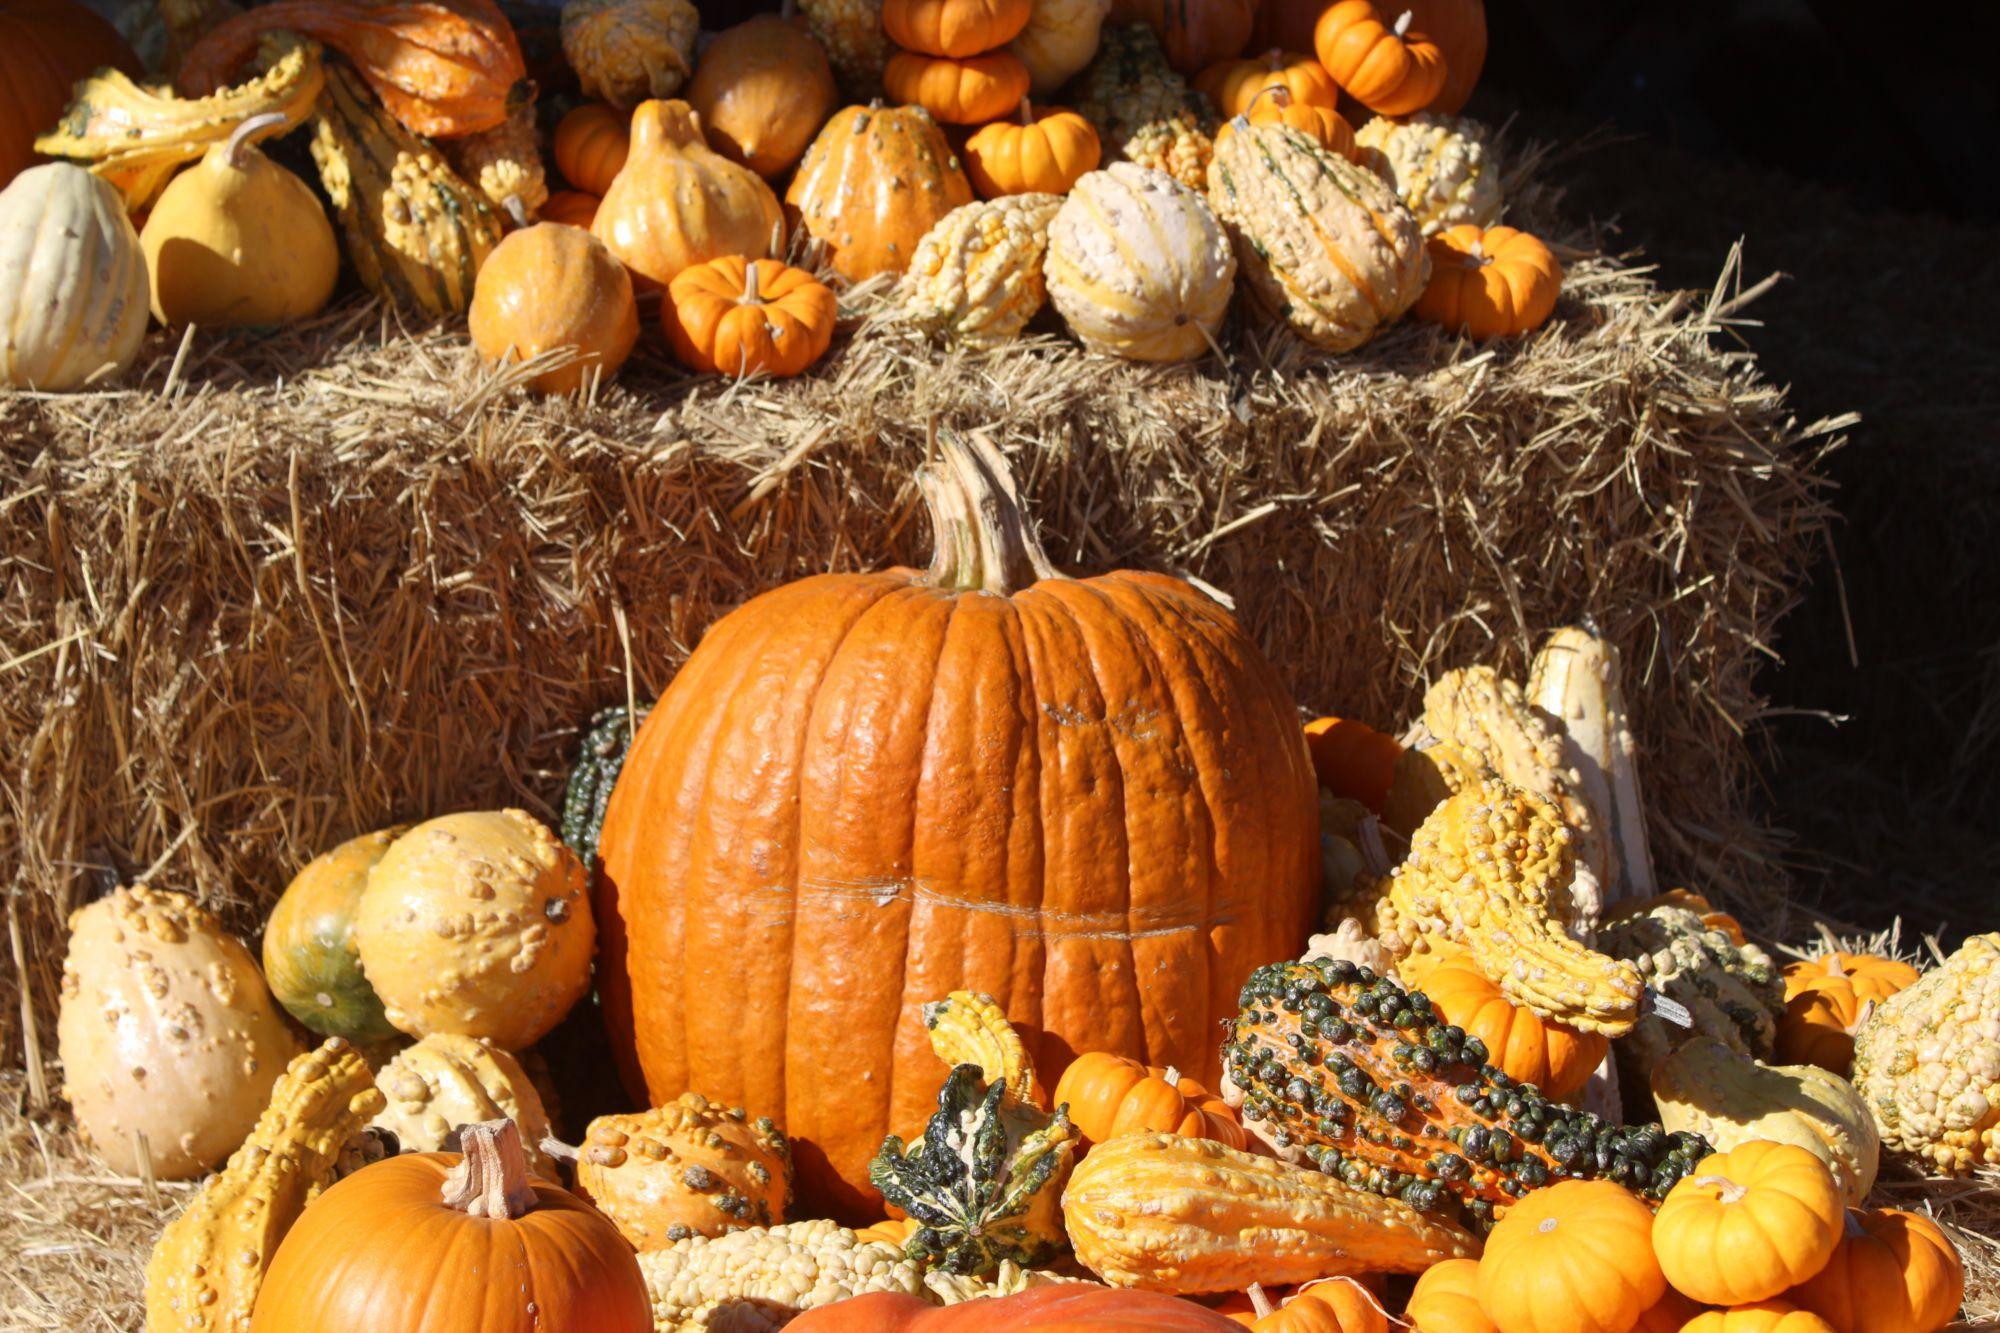 Jump into fall by visiting Marin's best pumpkin patches